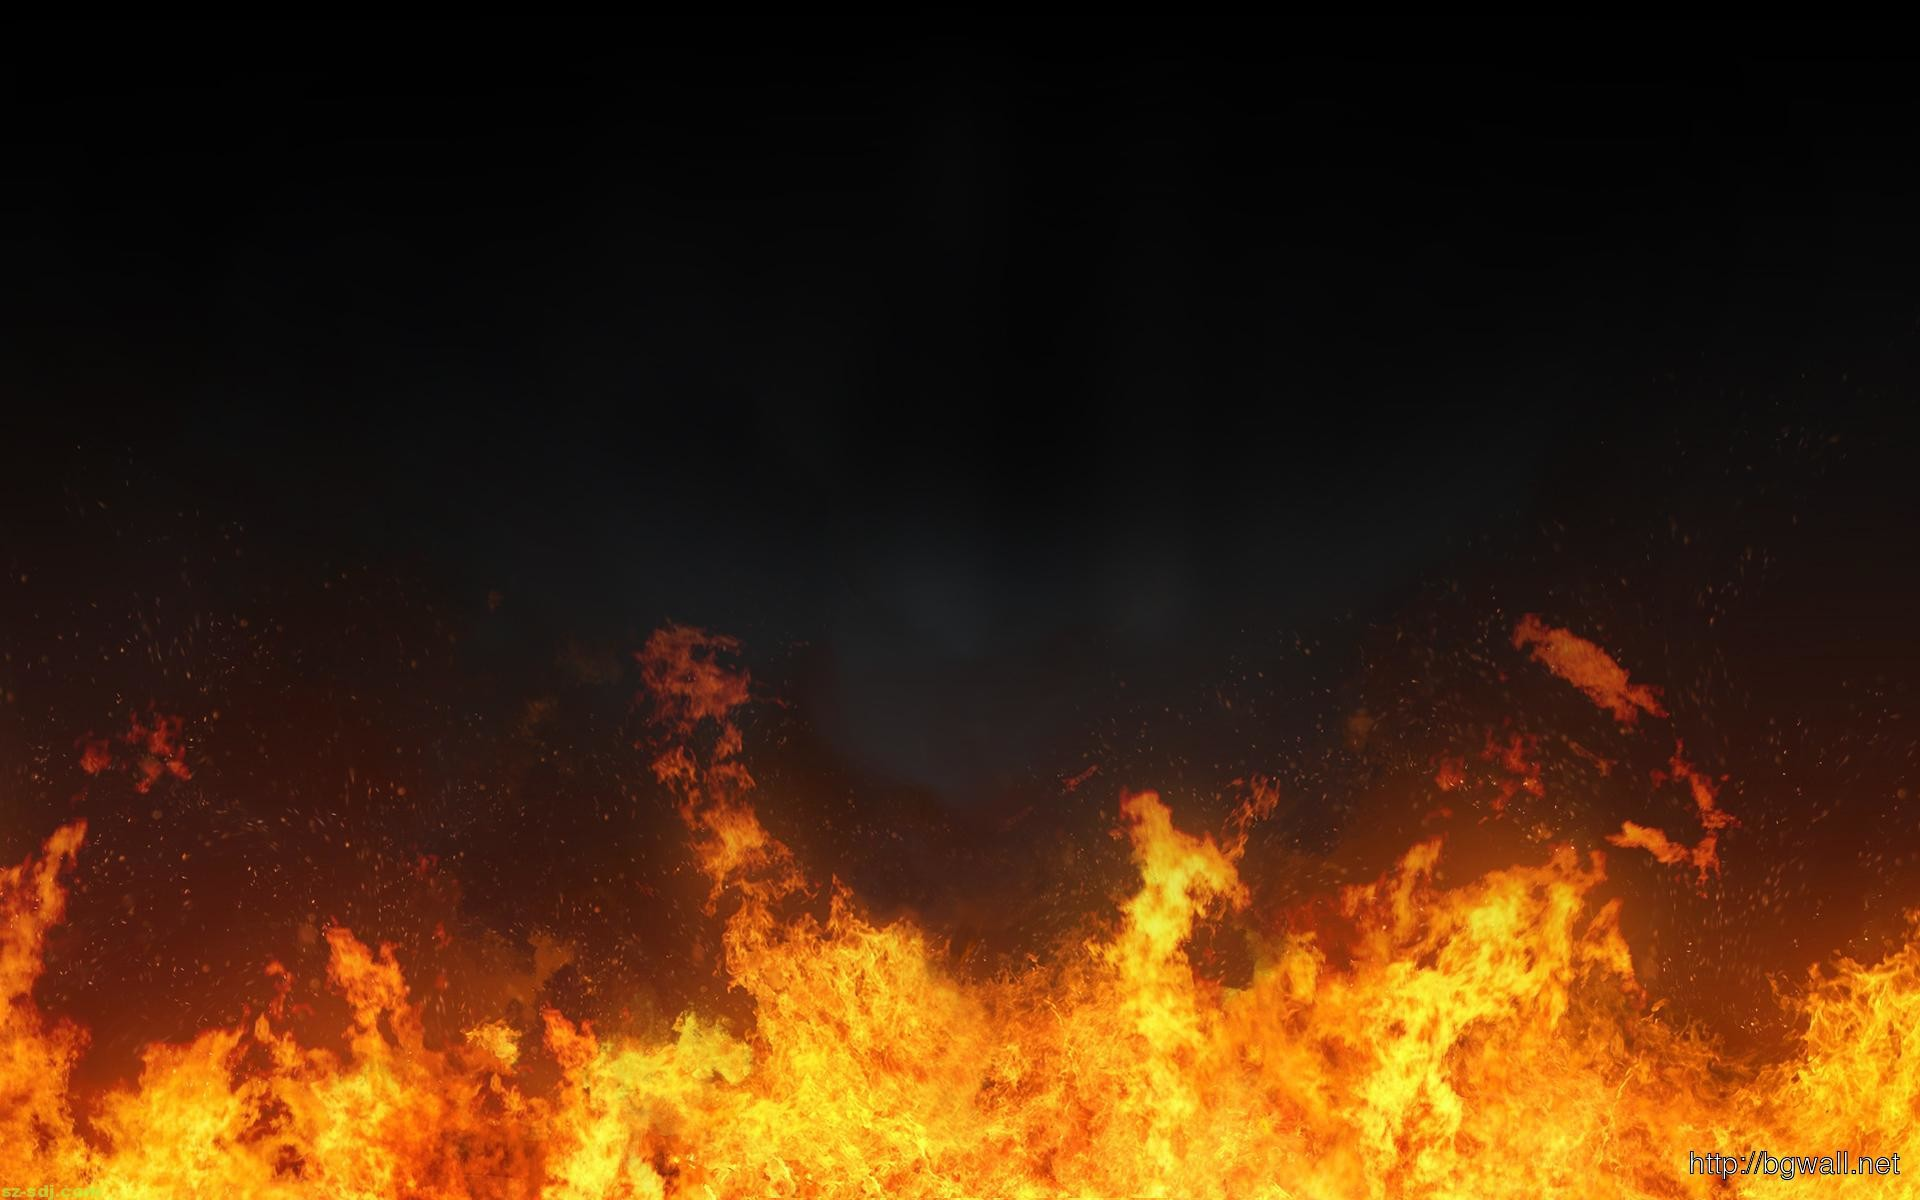 Home » Miscellaneous » Fire Of The Hell Wallpaper Computer Hd